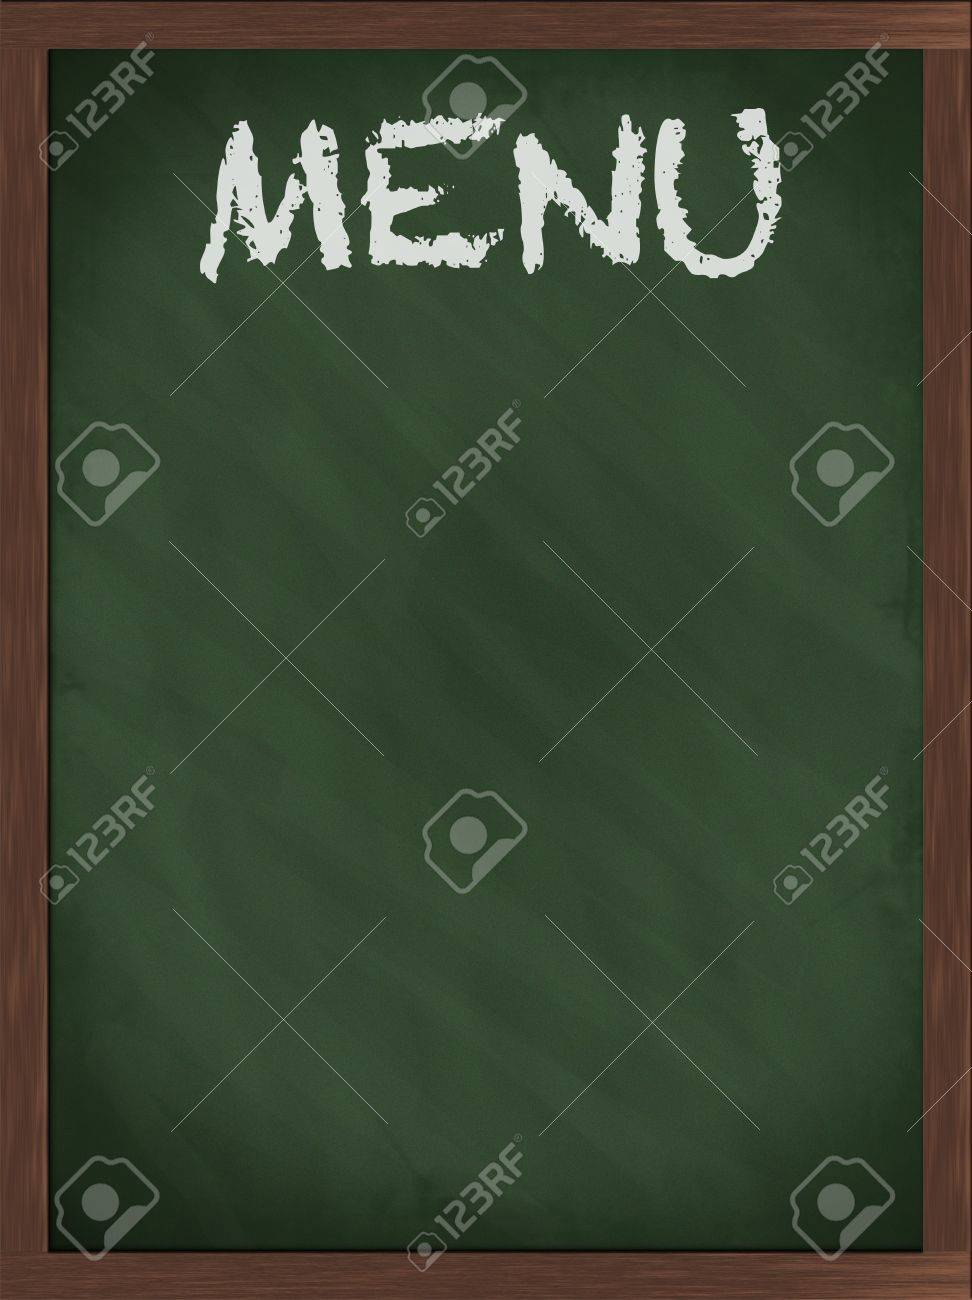 Green menu blackboard with empty space Stock Photo - 8226599